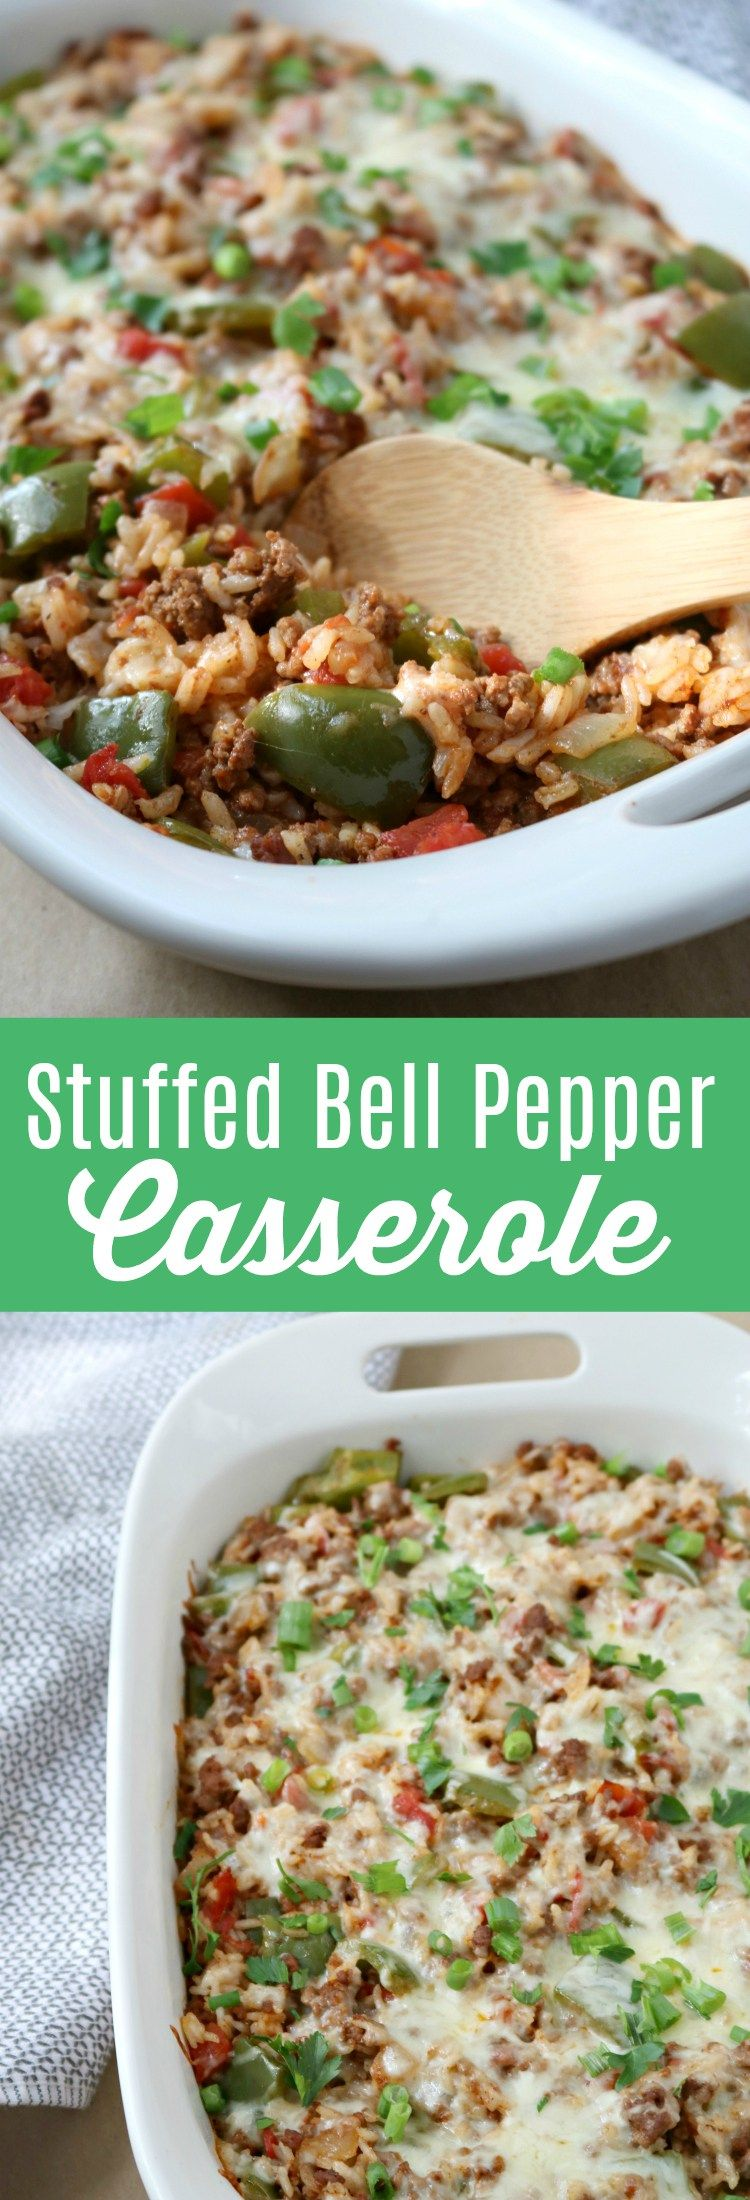 Stuffed Bell Pepper Casserole Recipe Stuffed Peppers Food Recipes Beef Recipes